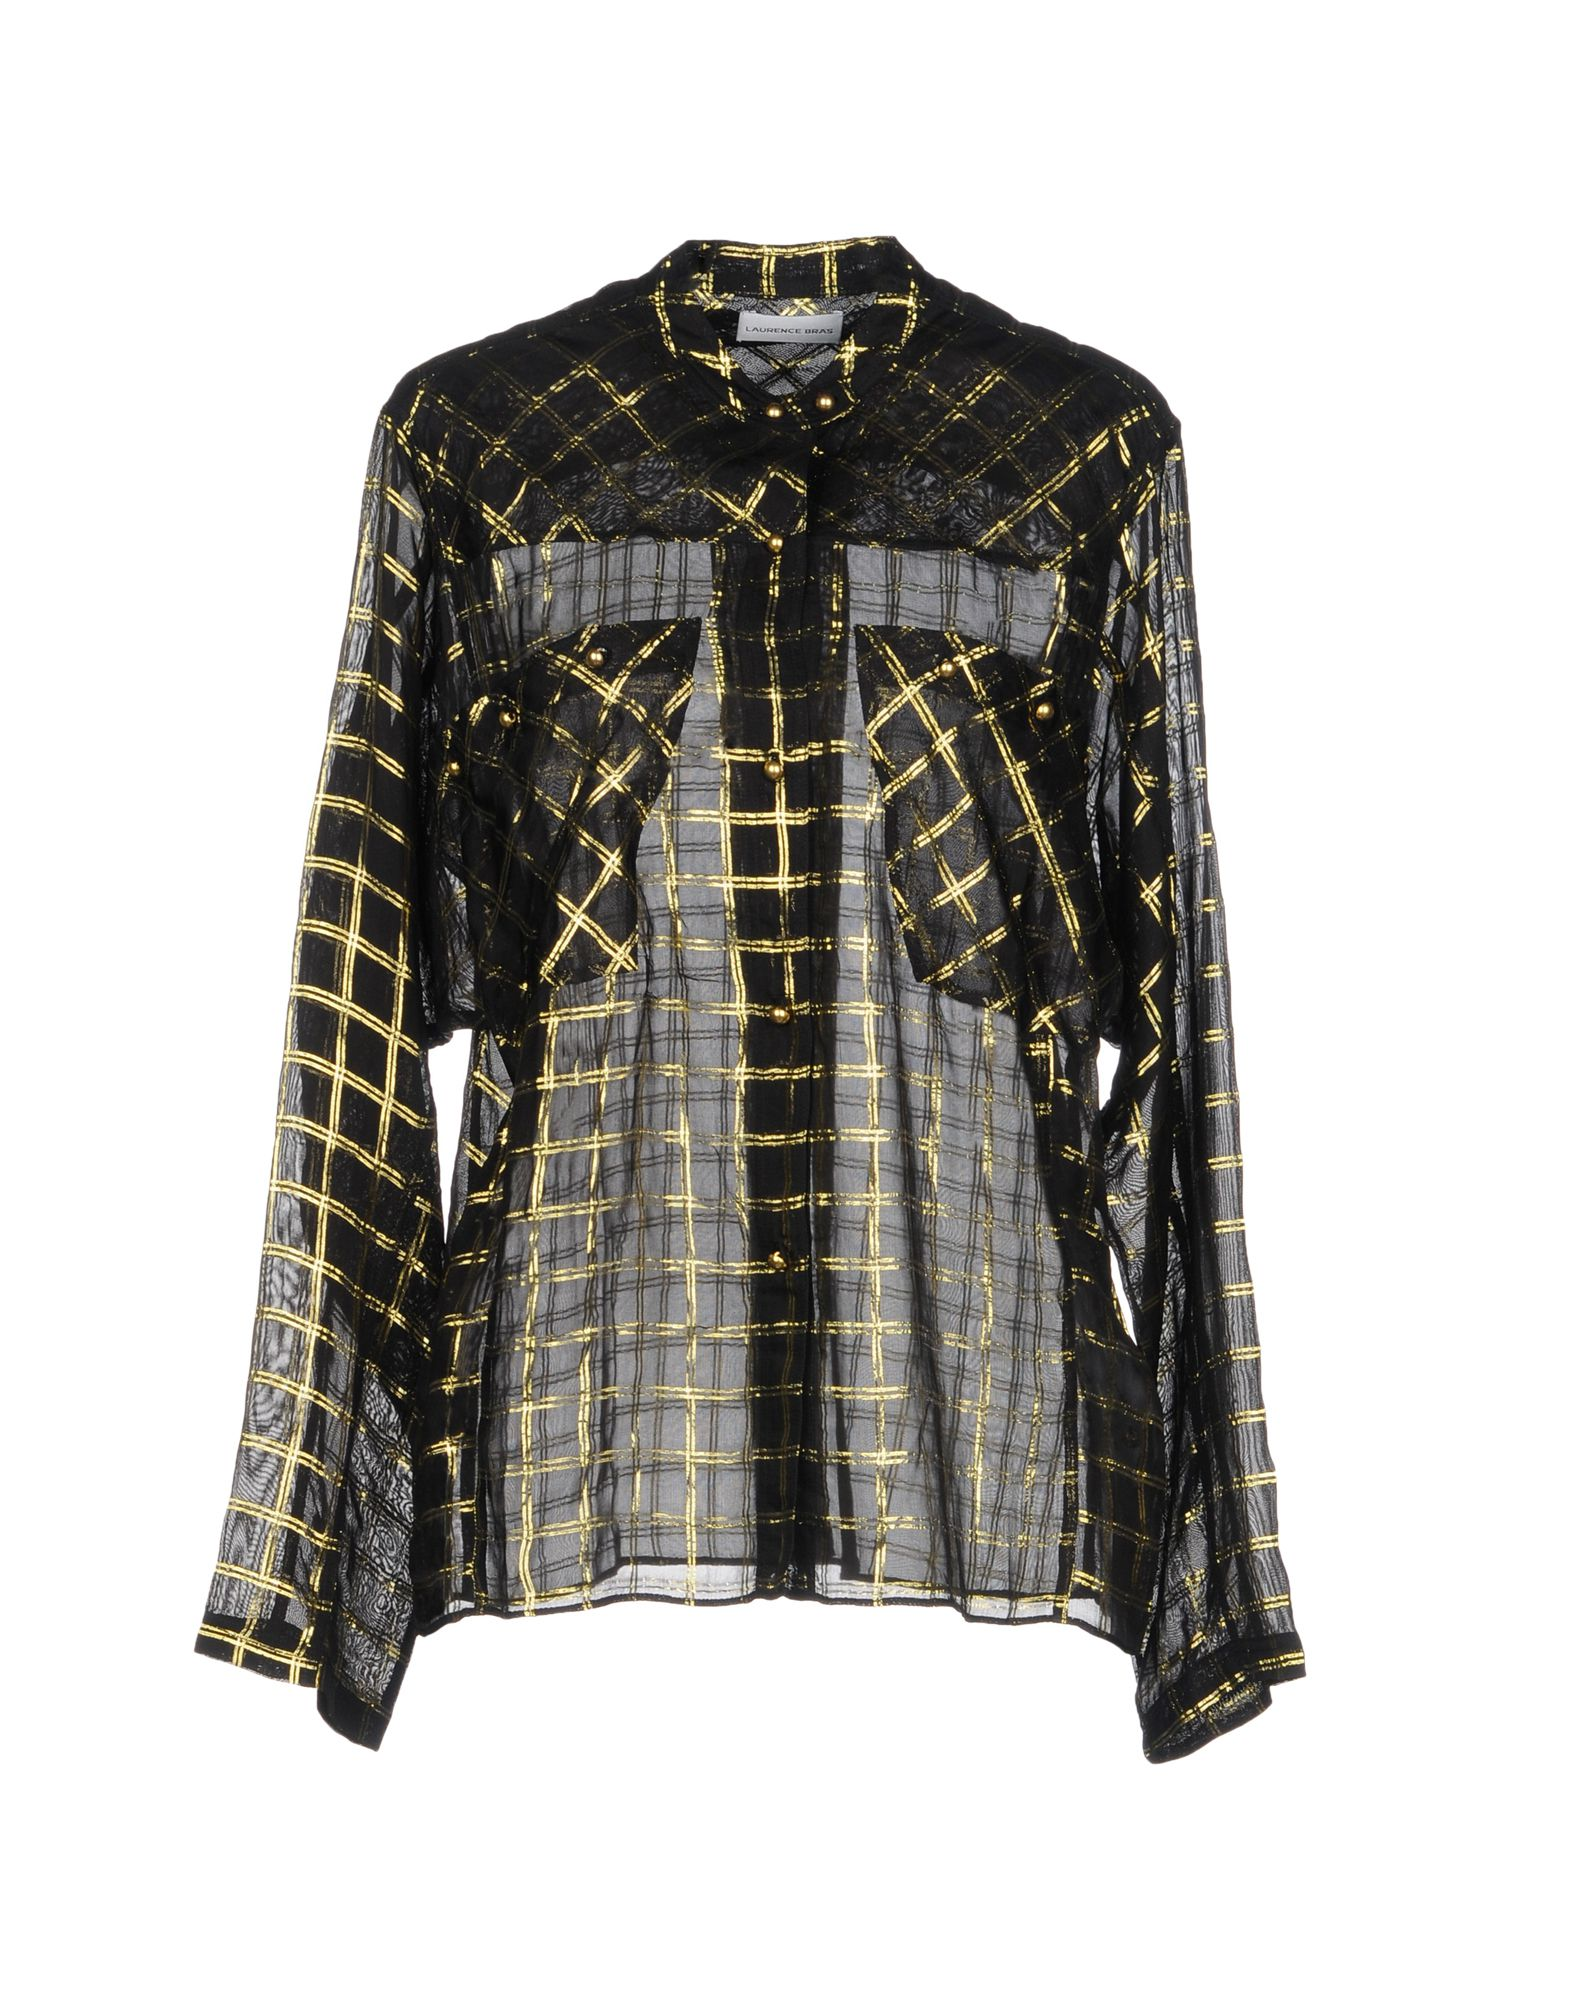 LAURENCE BRAS Checked Shirt in Black